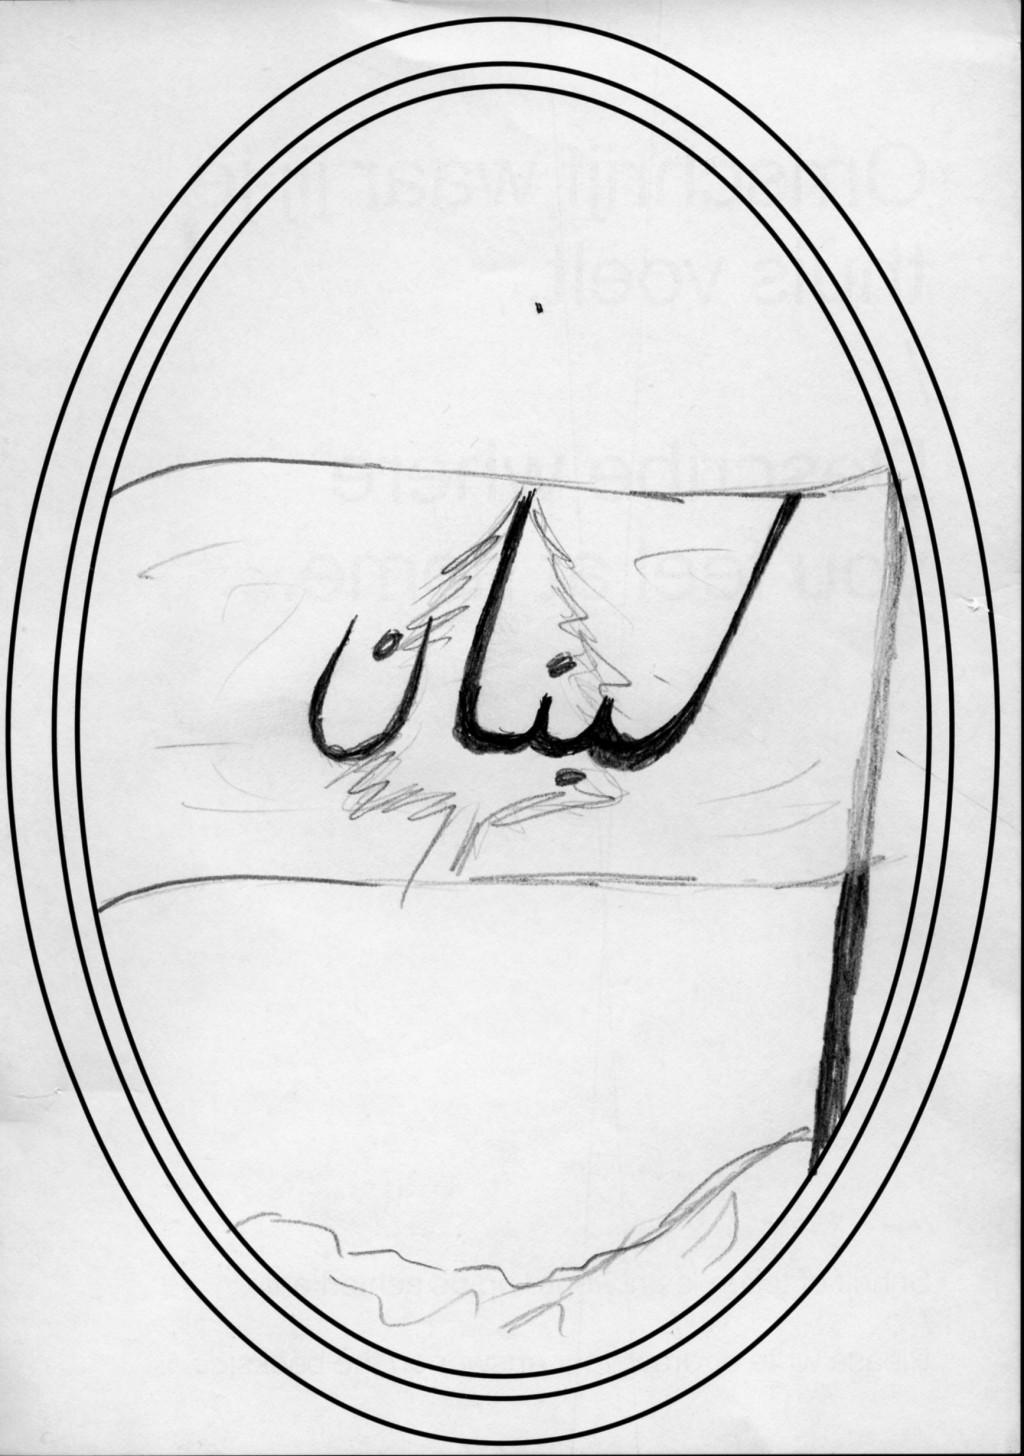 Flag with the Cedar of Lebanon, a piece of land and the word 'Lebanon' in Arabic.